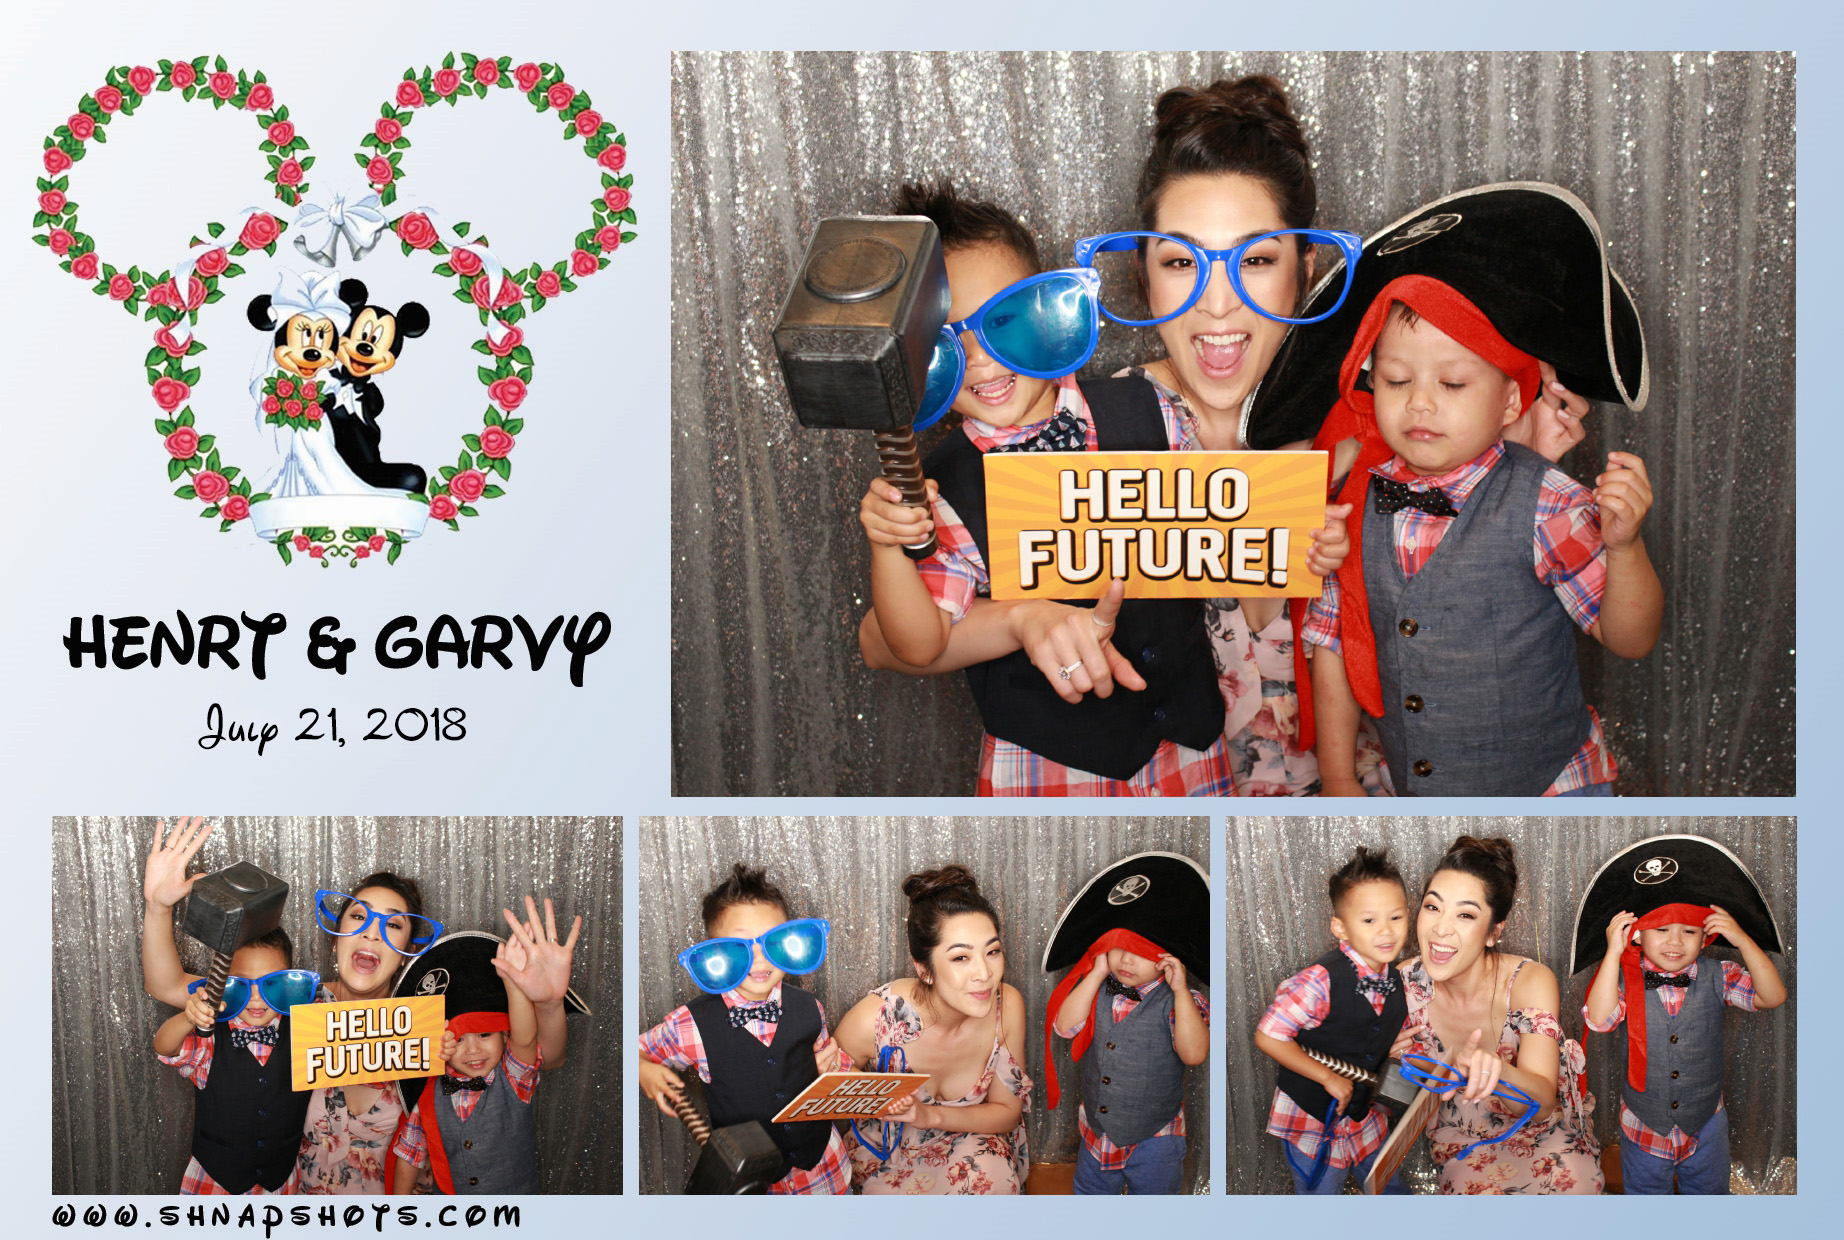 Henry & Garvy Wedding